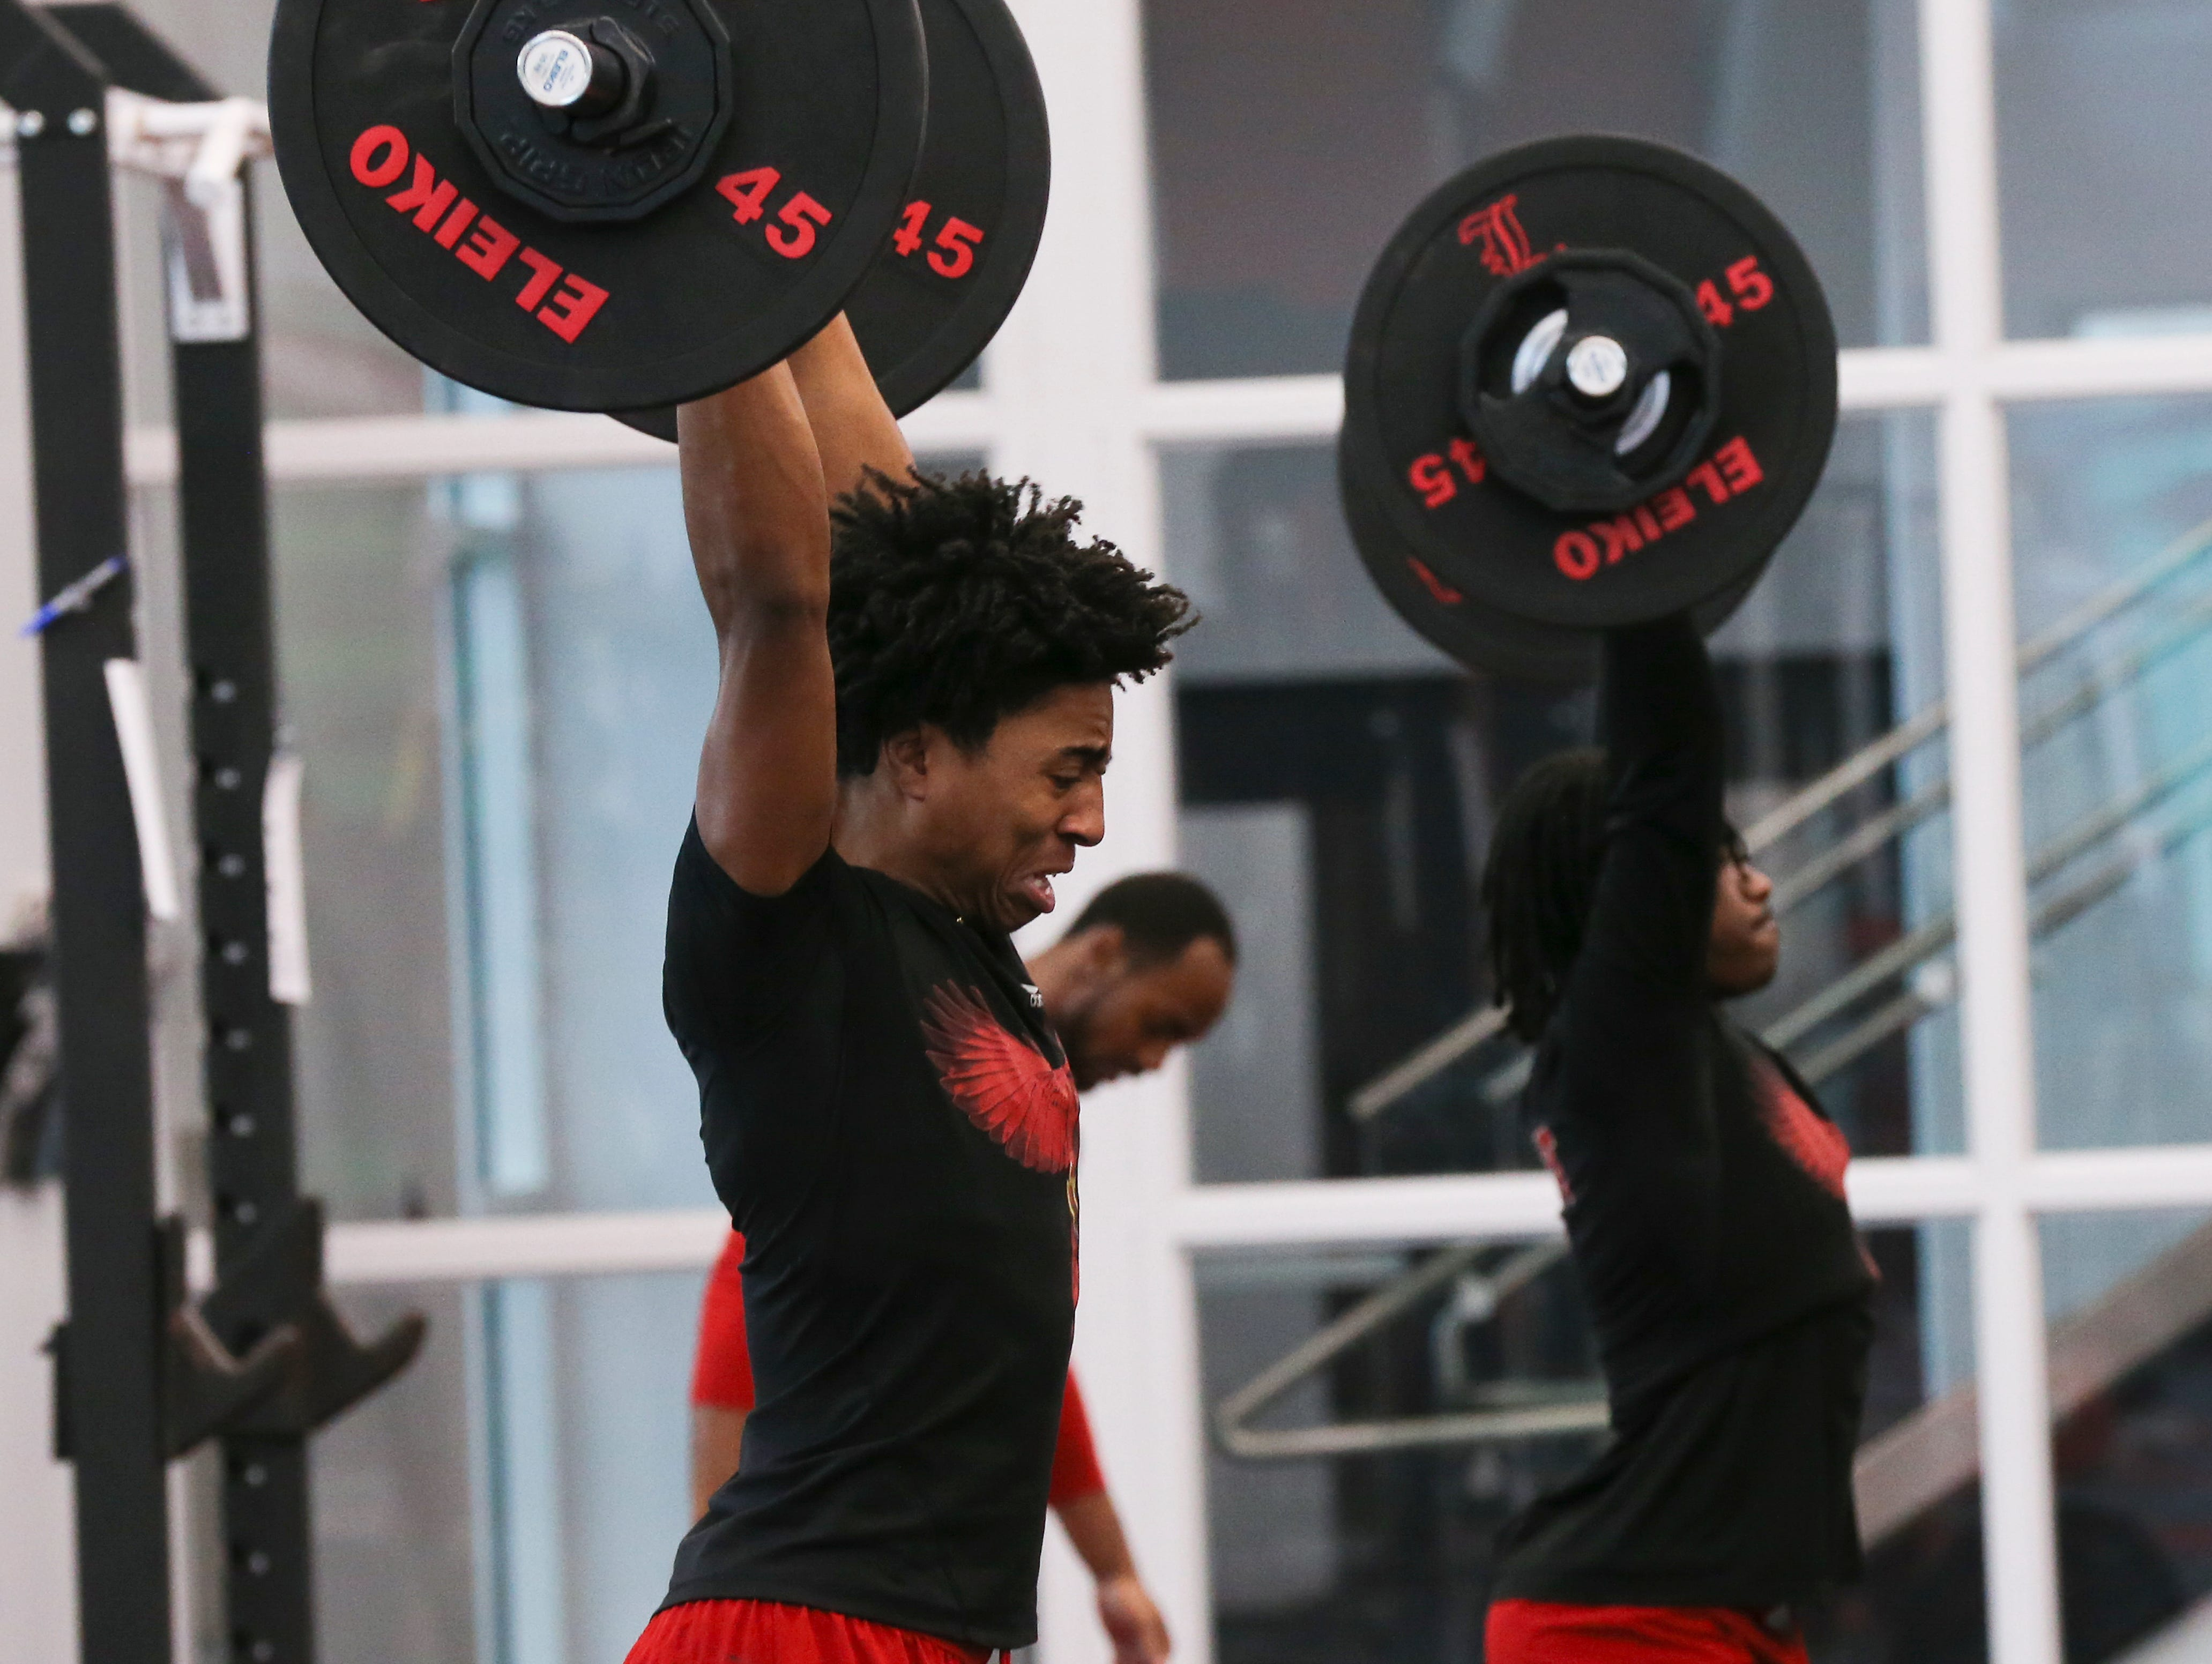 U of L wide receiver Dez Fitzpatrick, left, works out during strength and conditioning at the Schnellenberger Complex.